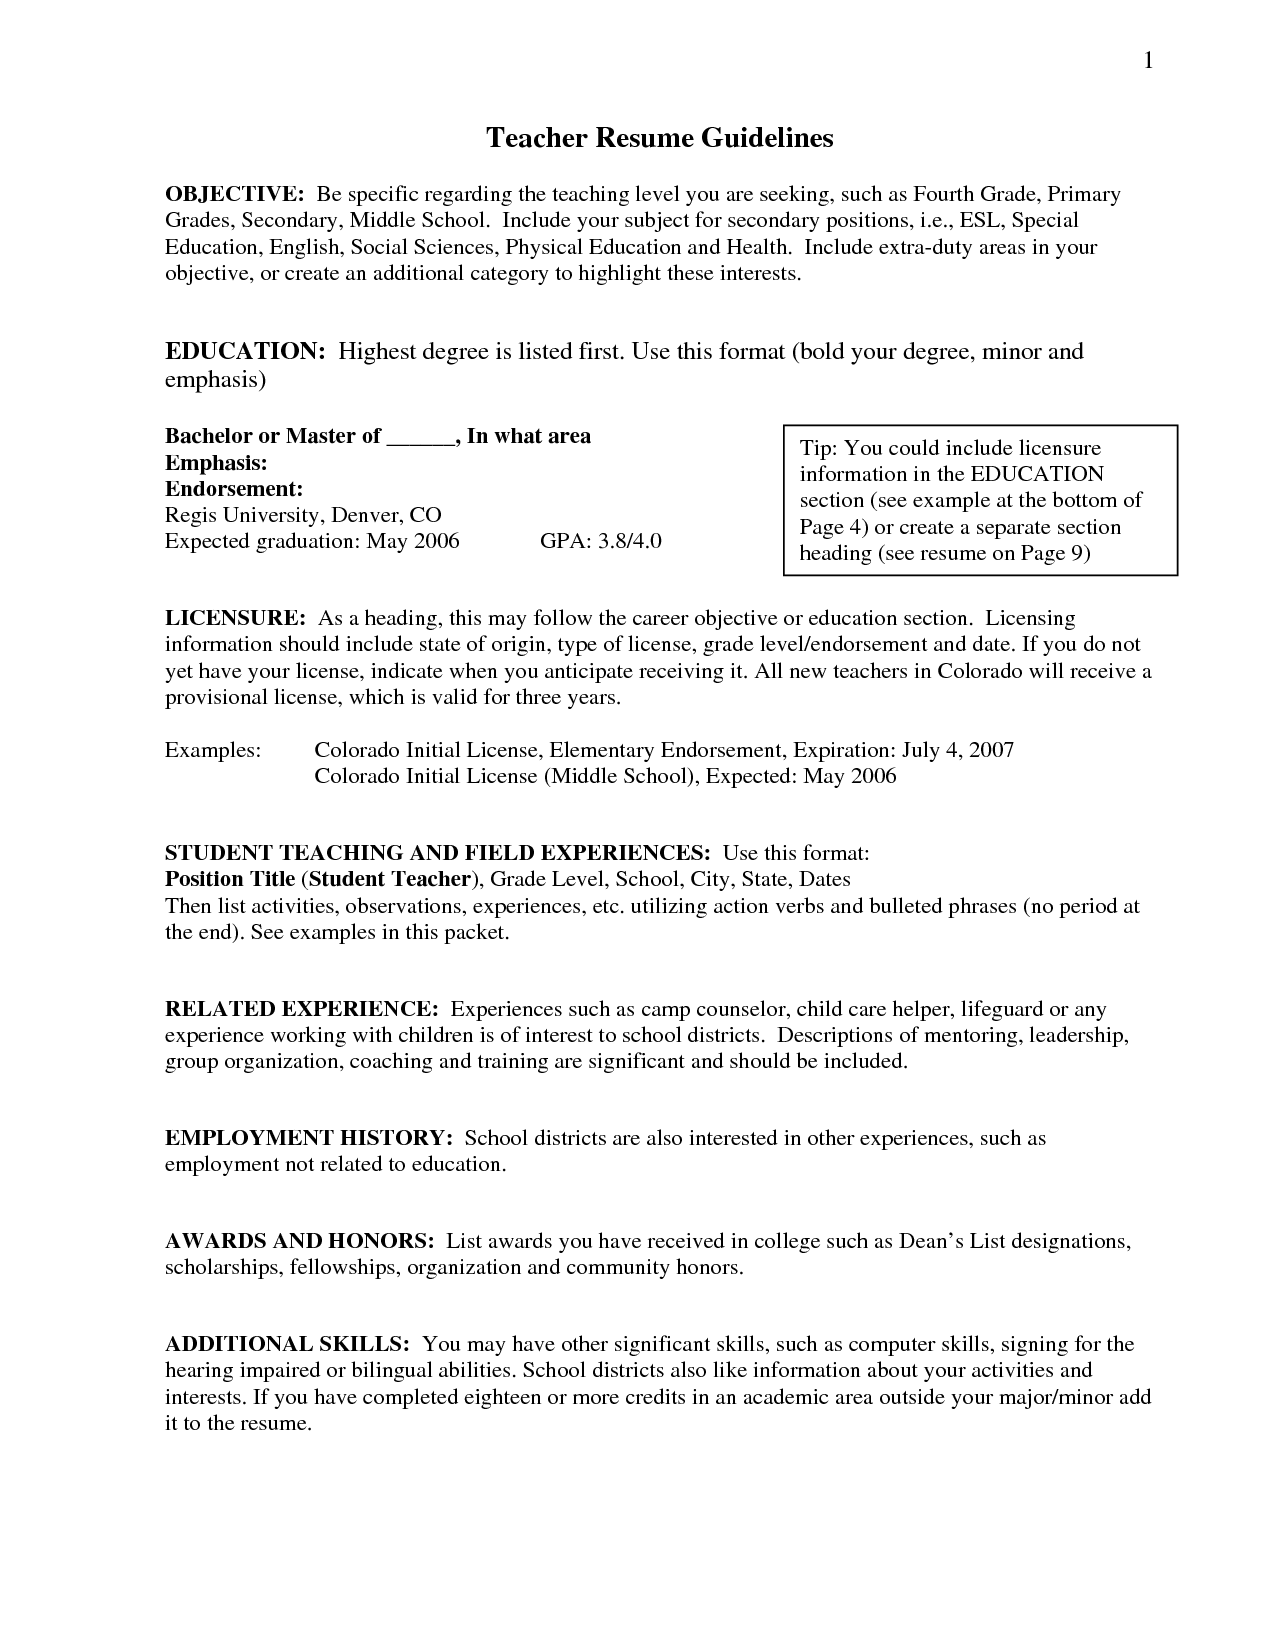 Resume Objective Statement Resume Objective Statement For Teacher  Httpwwwresumecareer